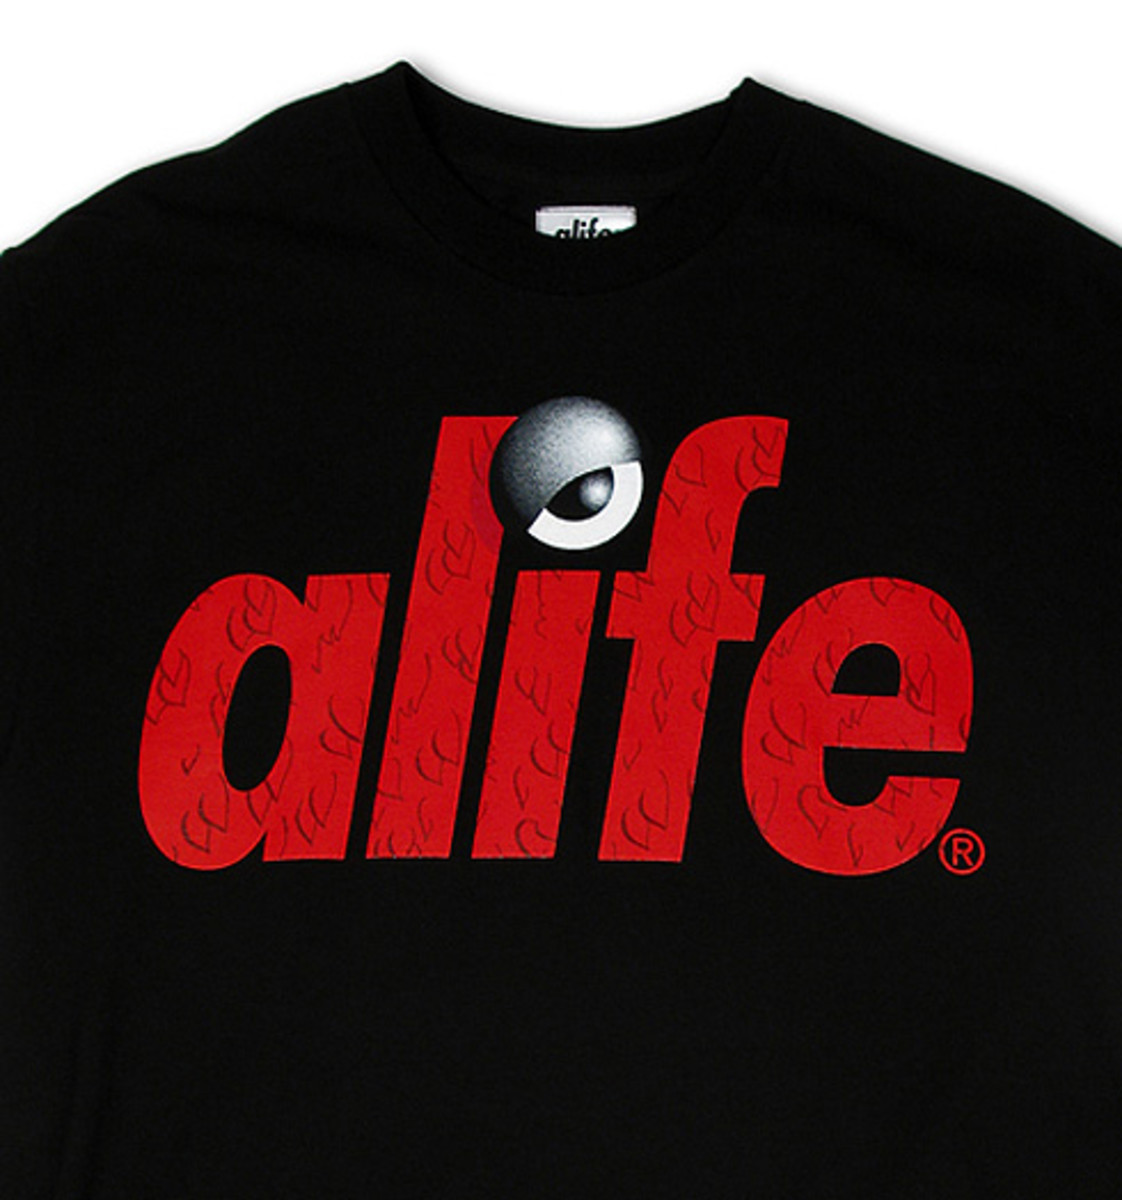 alife_monster_tee_02.jpg